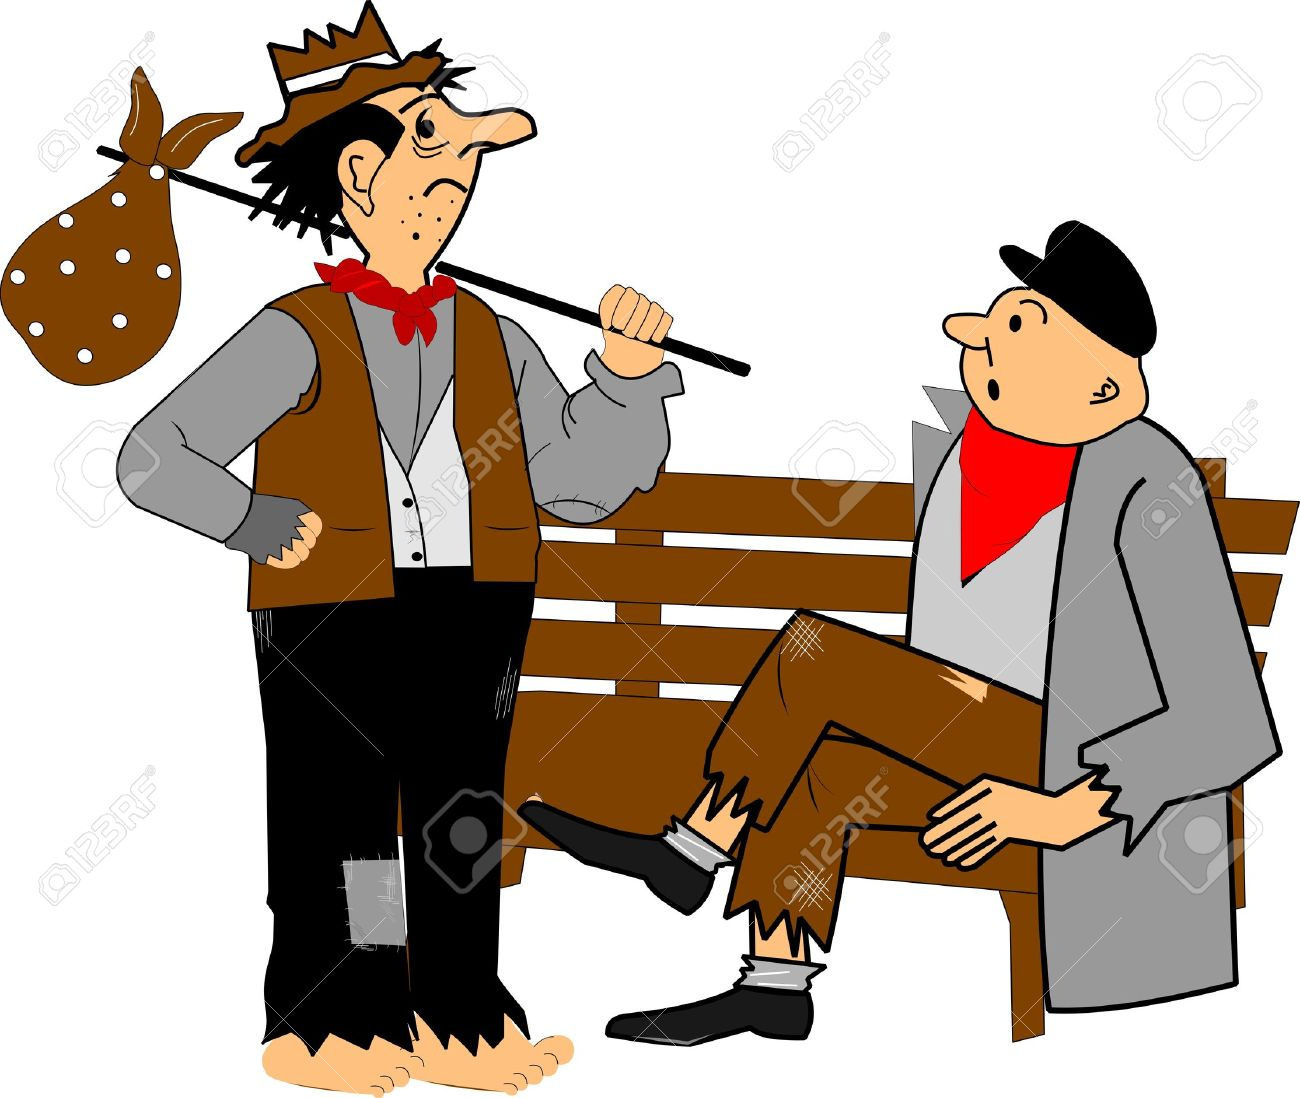 homeless men chatting on bench Stock Vector - 16272257